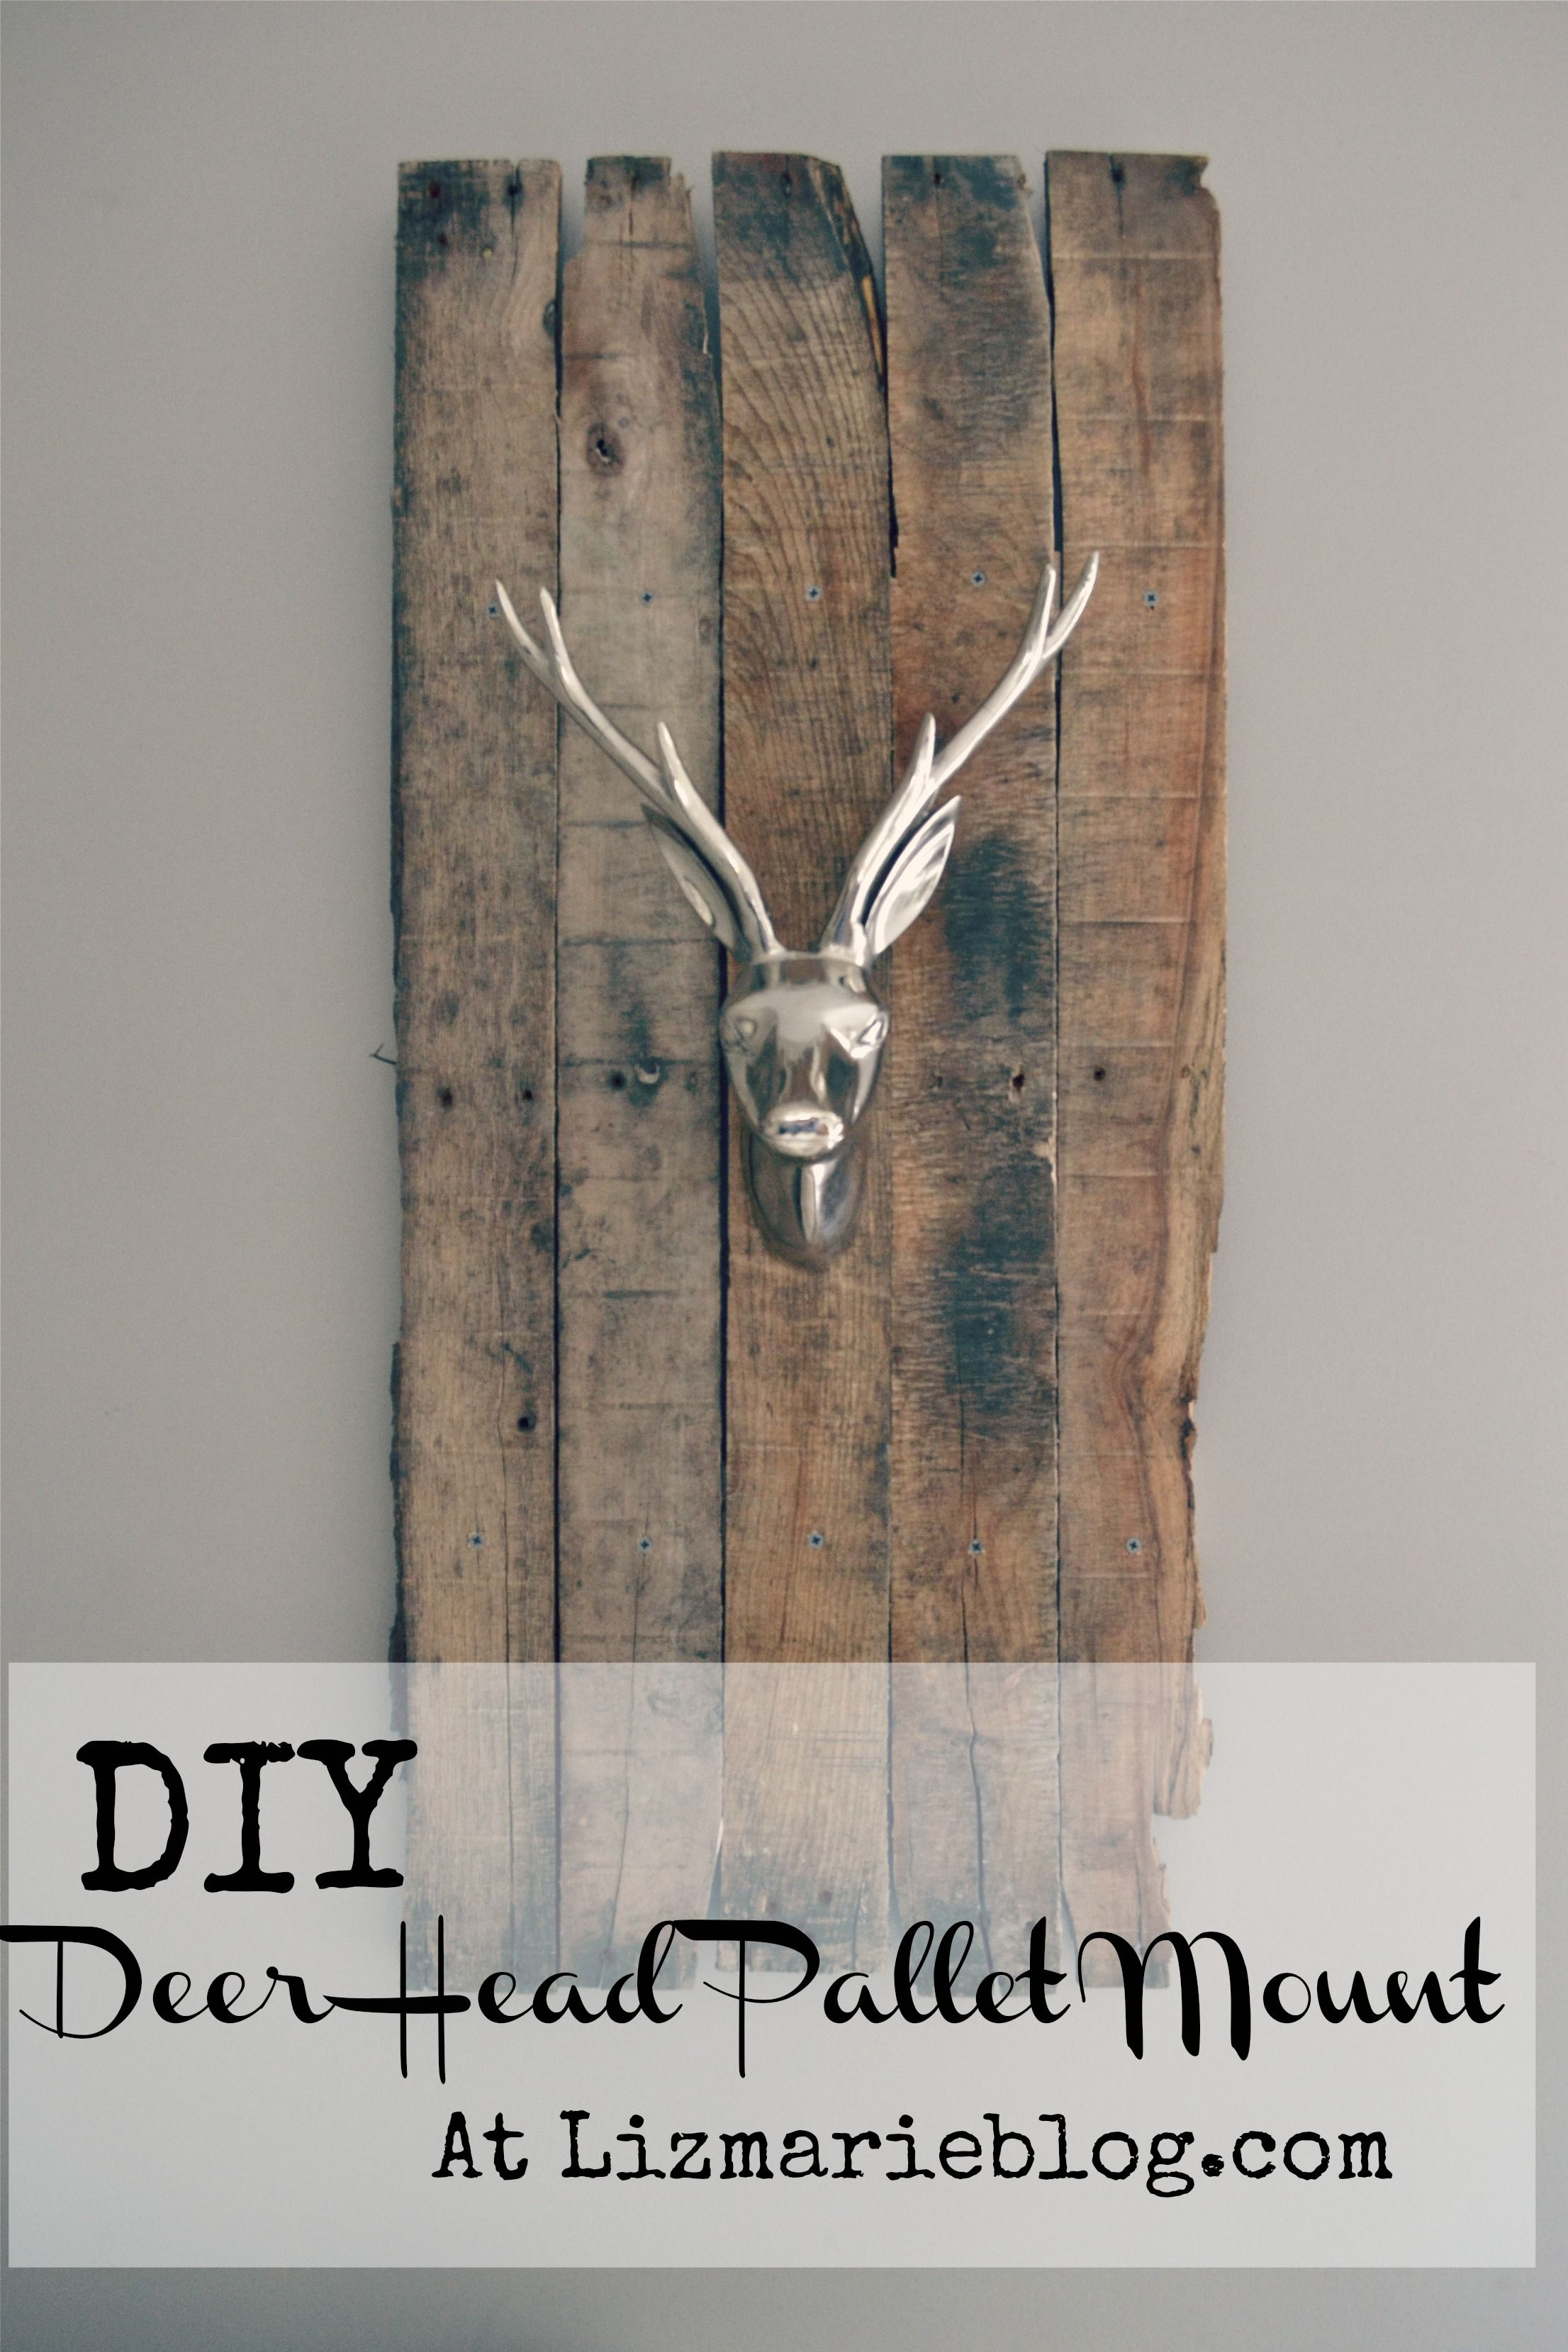 DIY Deer Head Pallet Mount